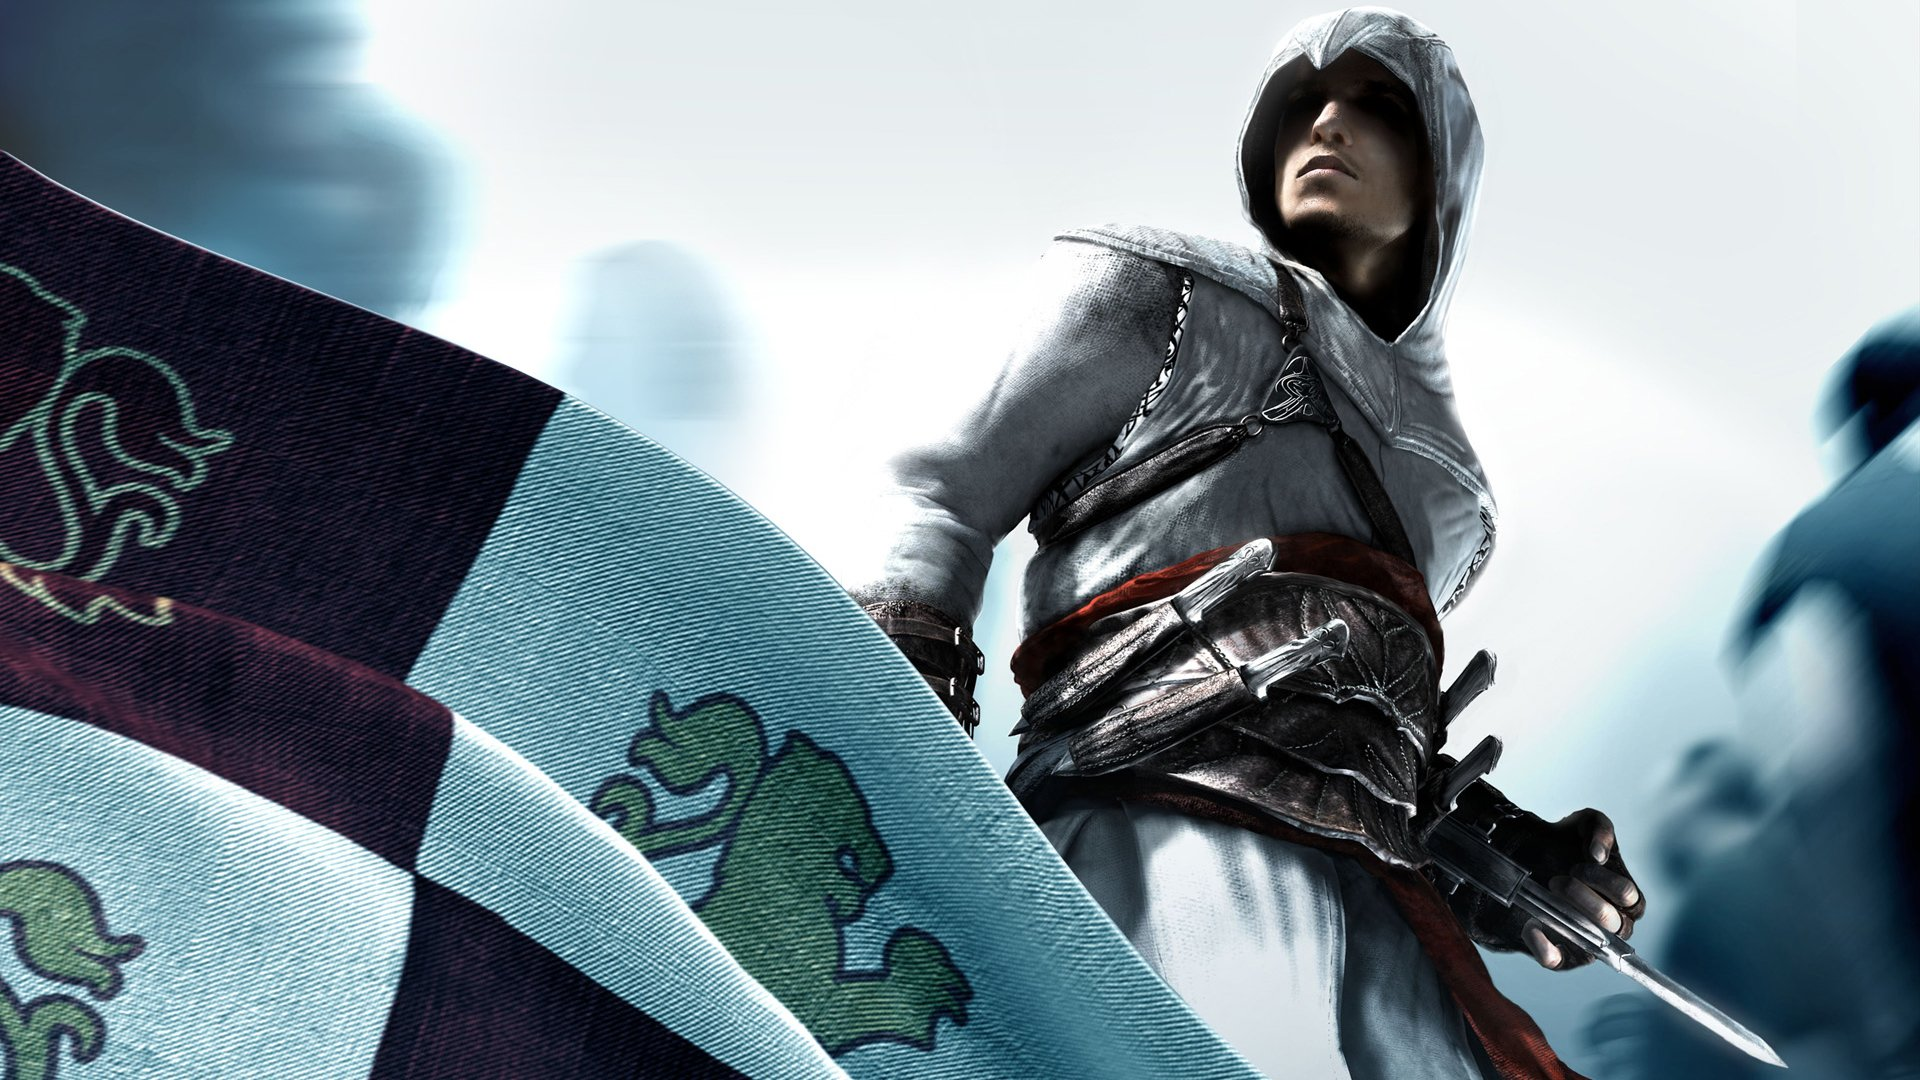 22 Altair Assassin S Creed Hd Wallpapers Background Images